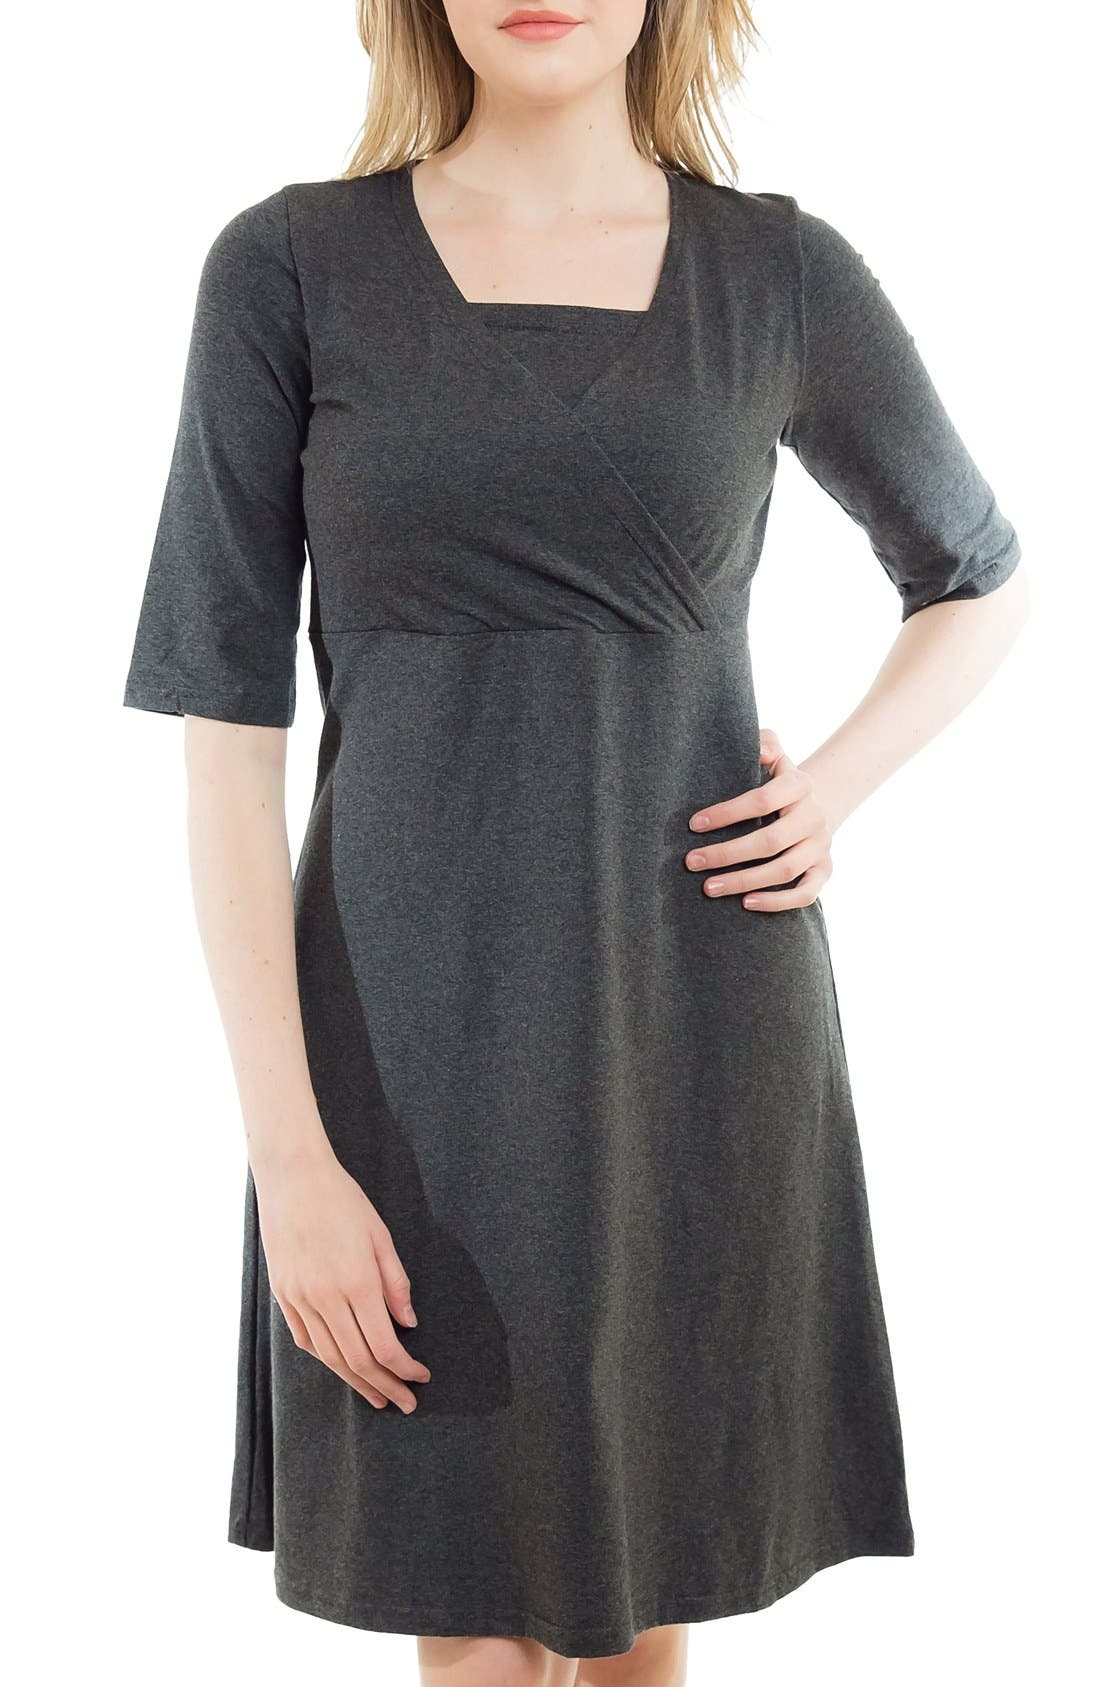 Crossover Maternity/Nursing Dress,                             Main thumbnail 1, color,                             HEATHER CHARCOAL